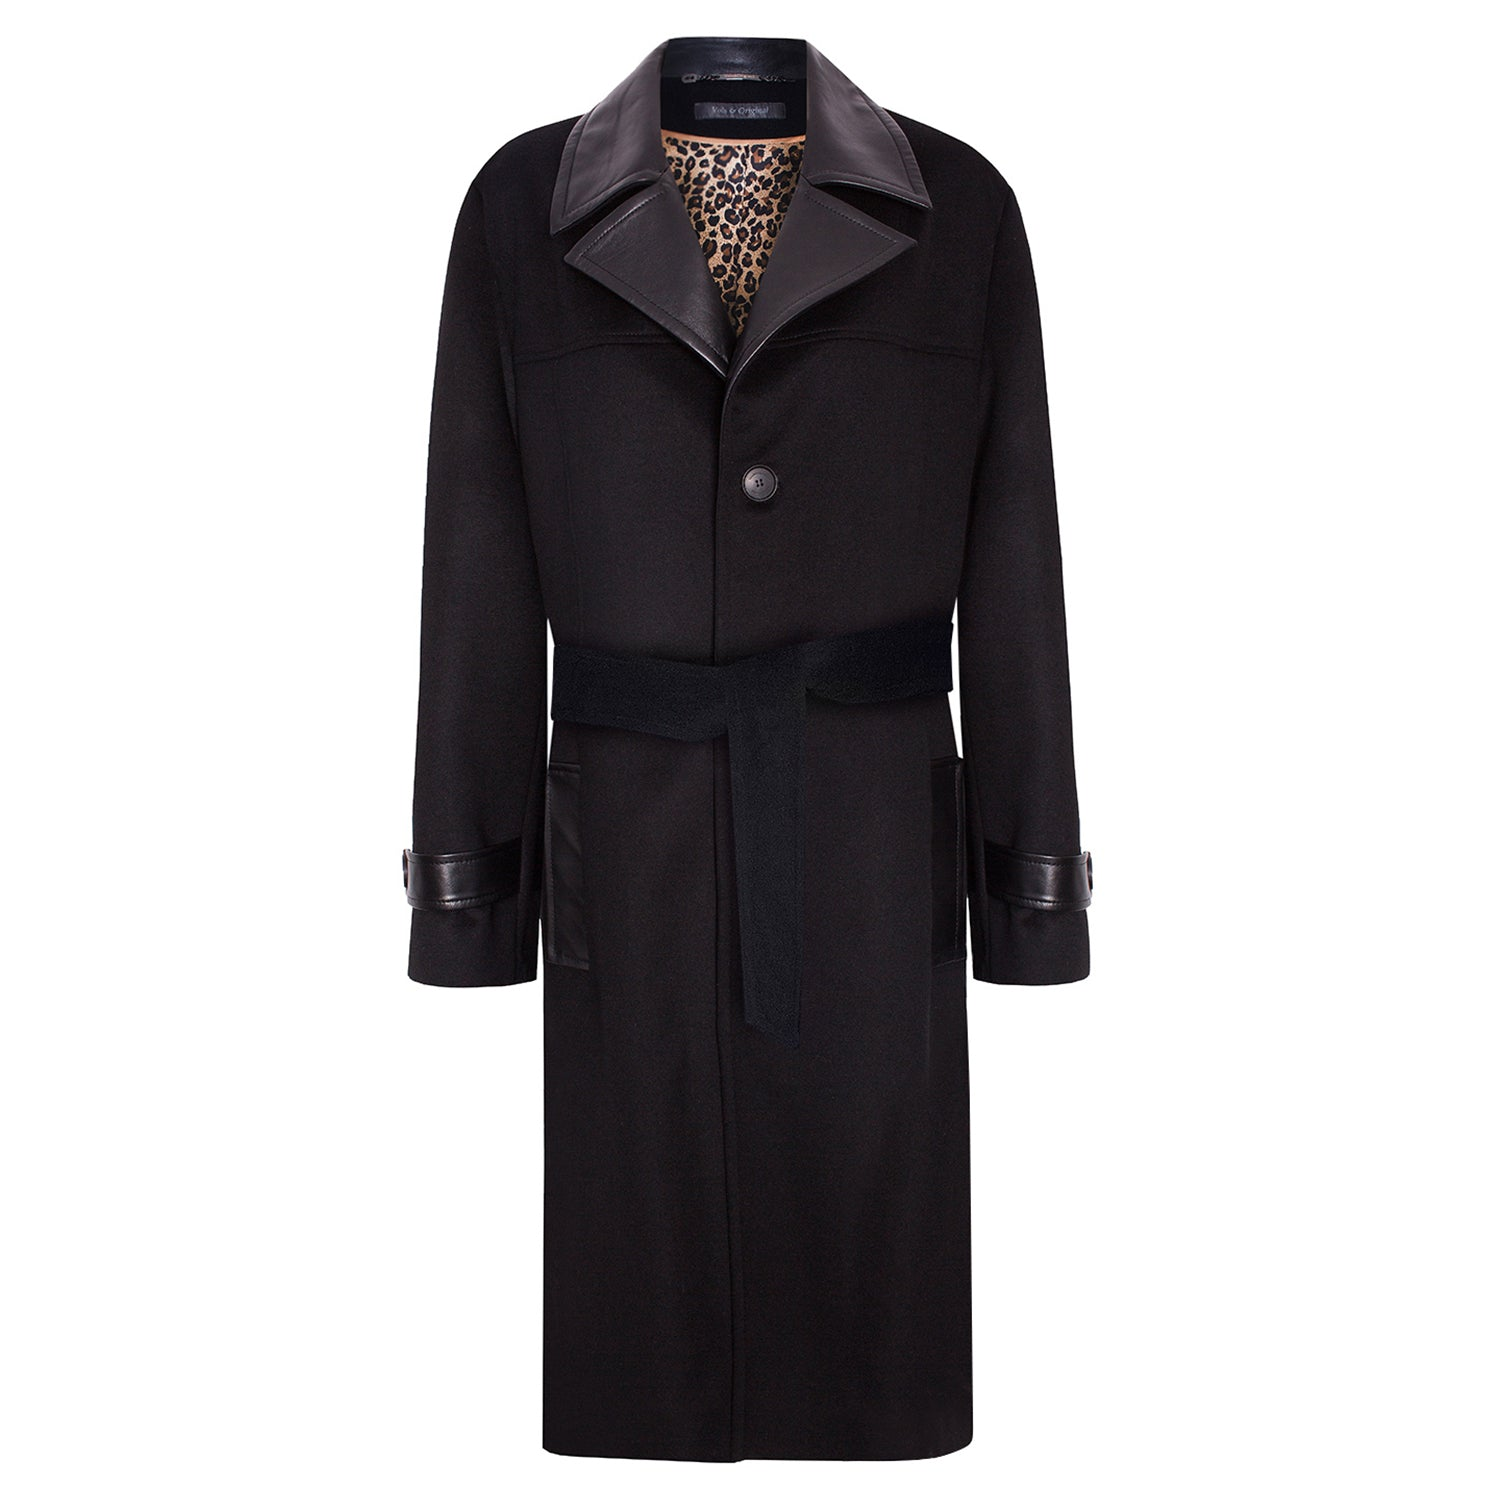 'Snoop' Cashmere Trench Coat with Leather Elements - VOLS & ORIGINAL